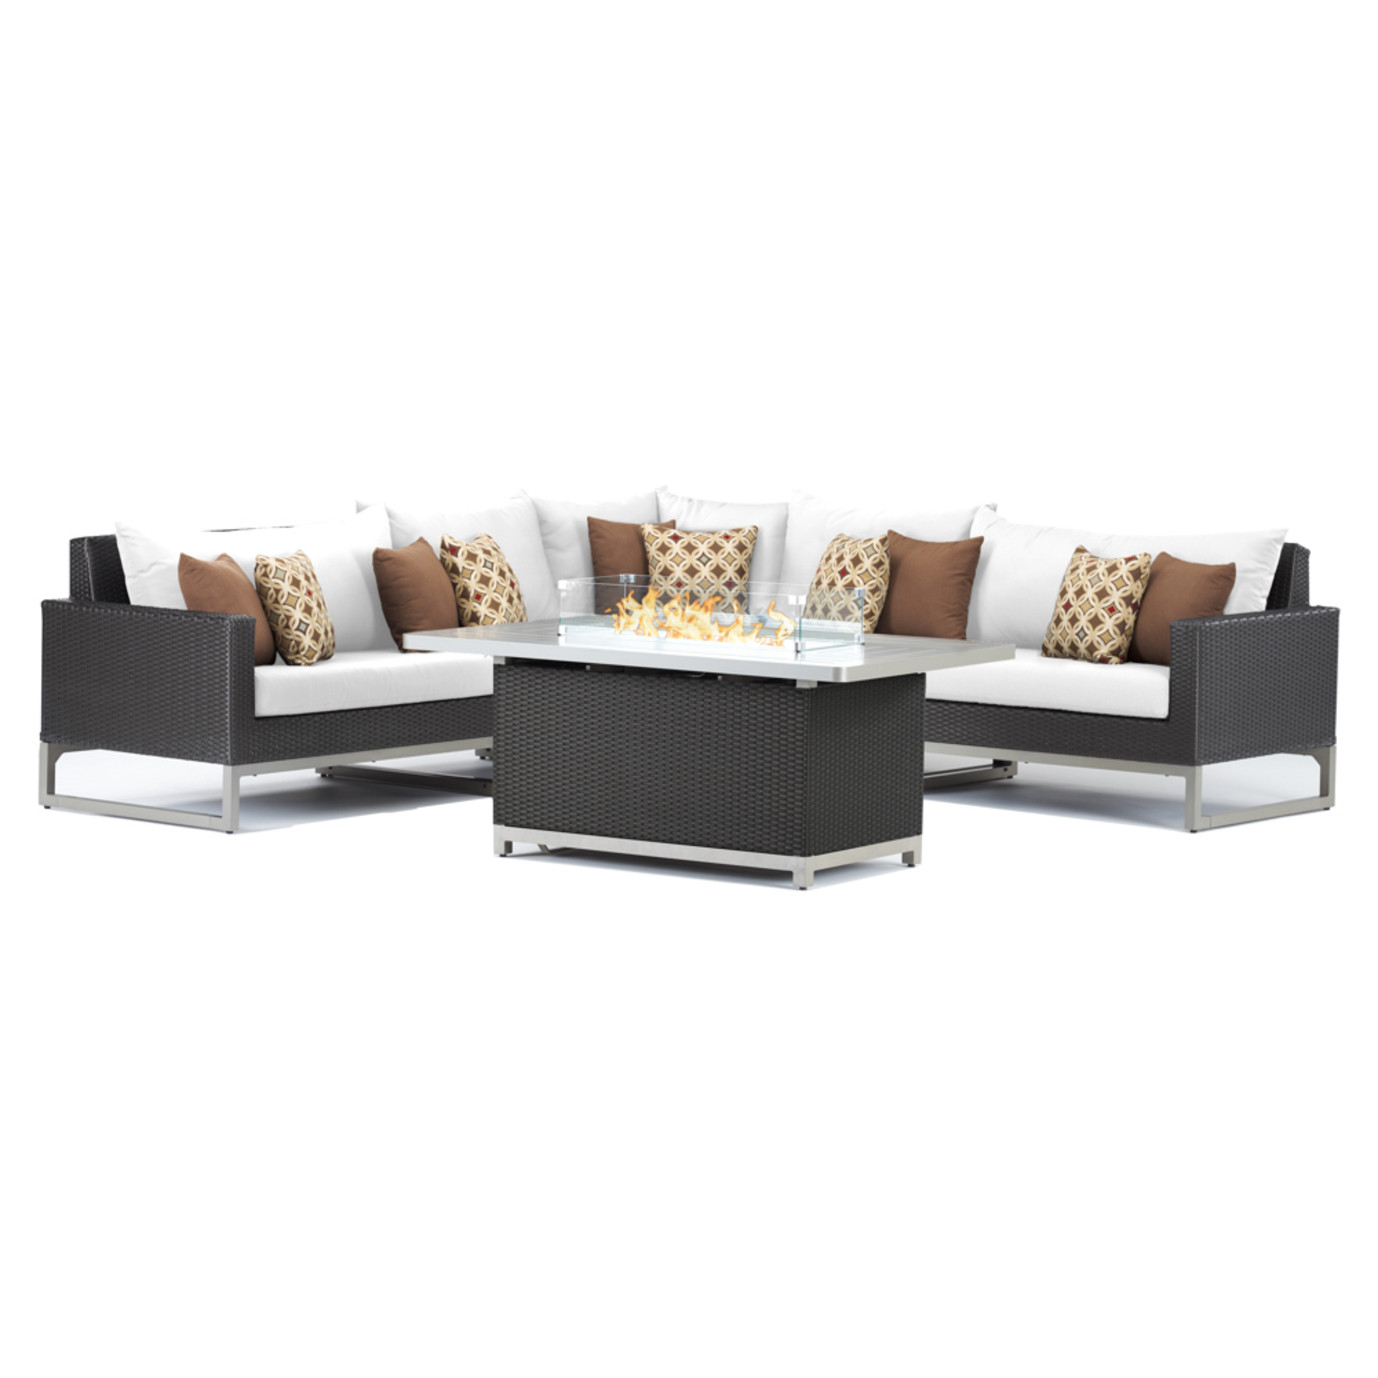 Milo Espresso 6 Piece Fire Sectional - Moroccan Cream